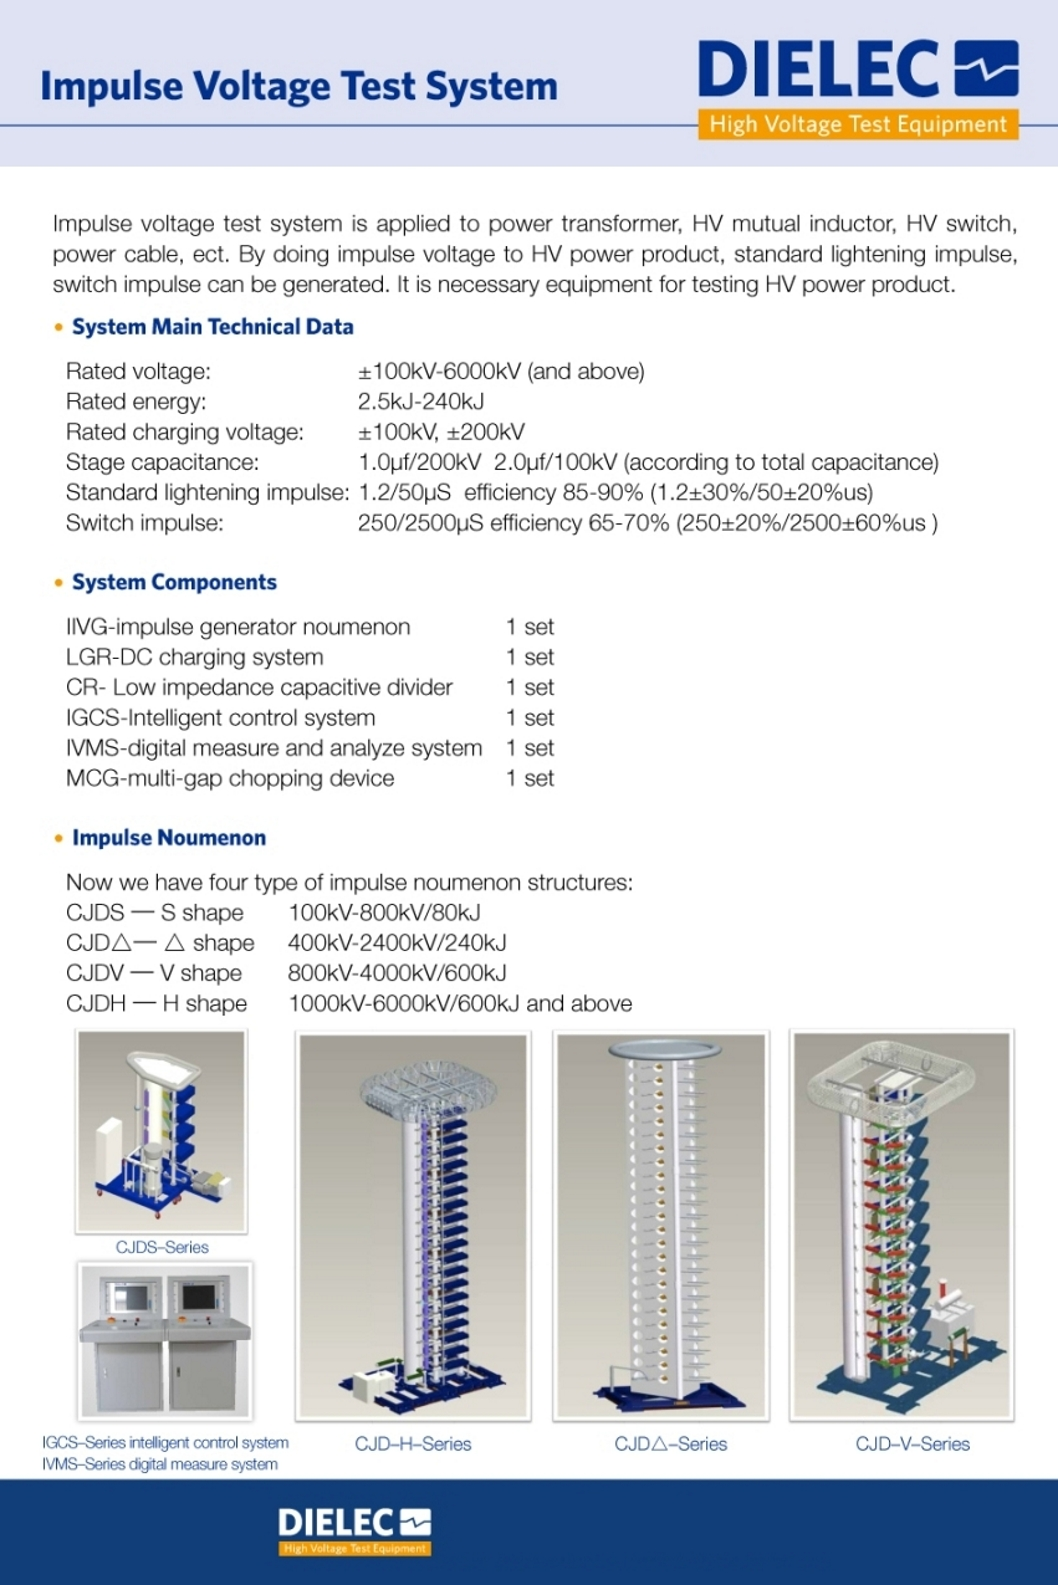 Dielec - Brochure - Impulse Voltage Test System